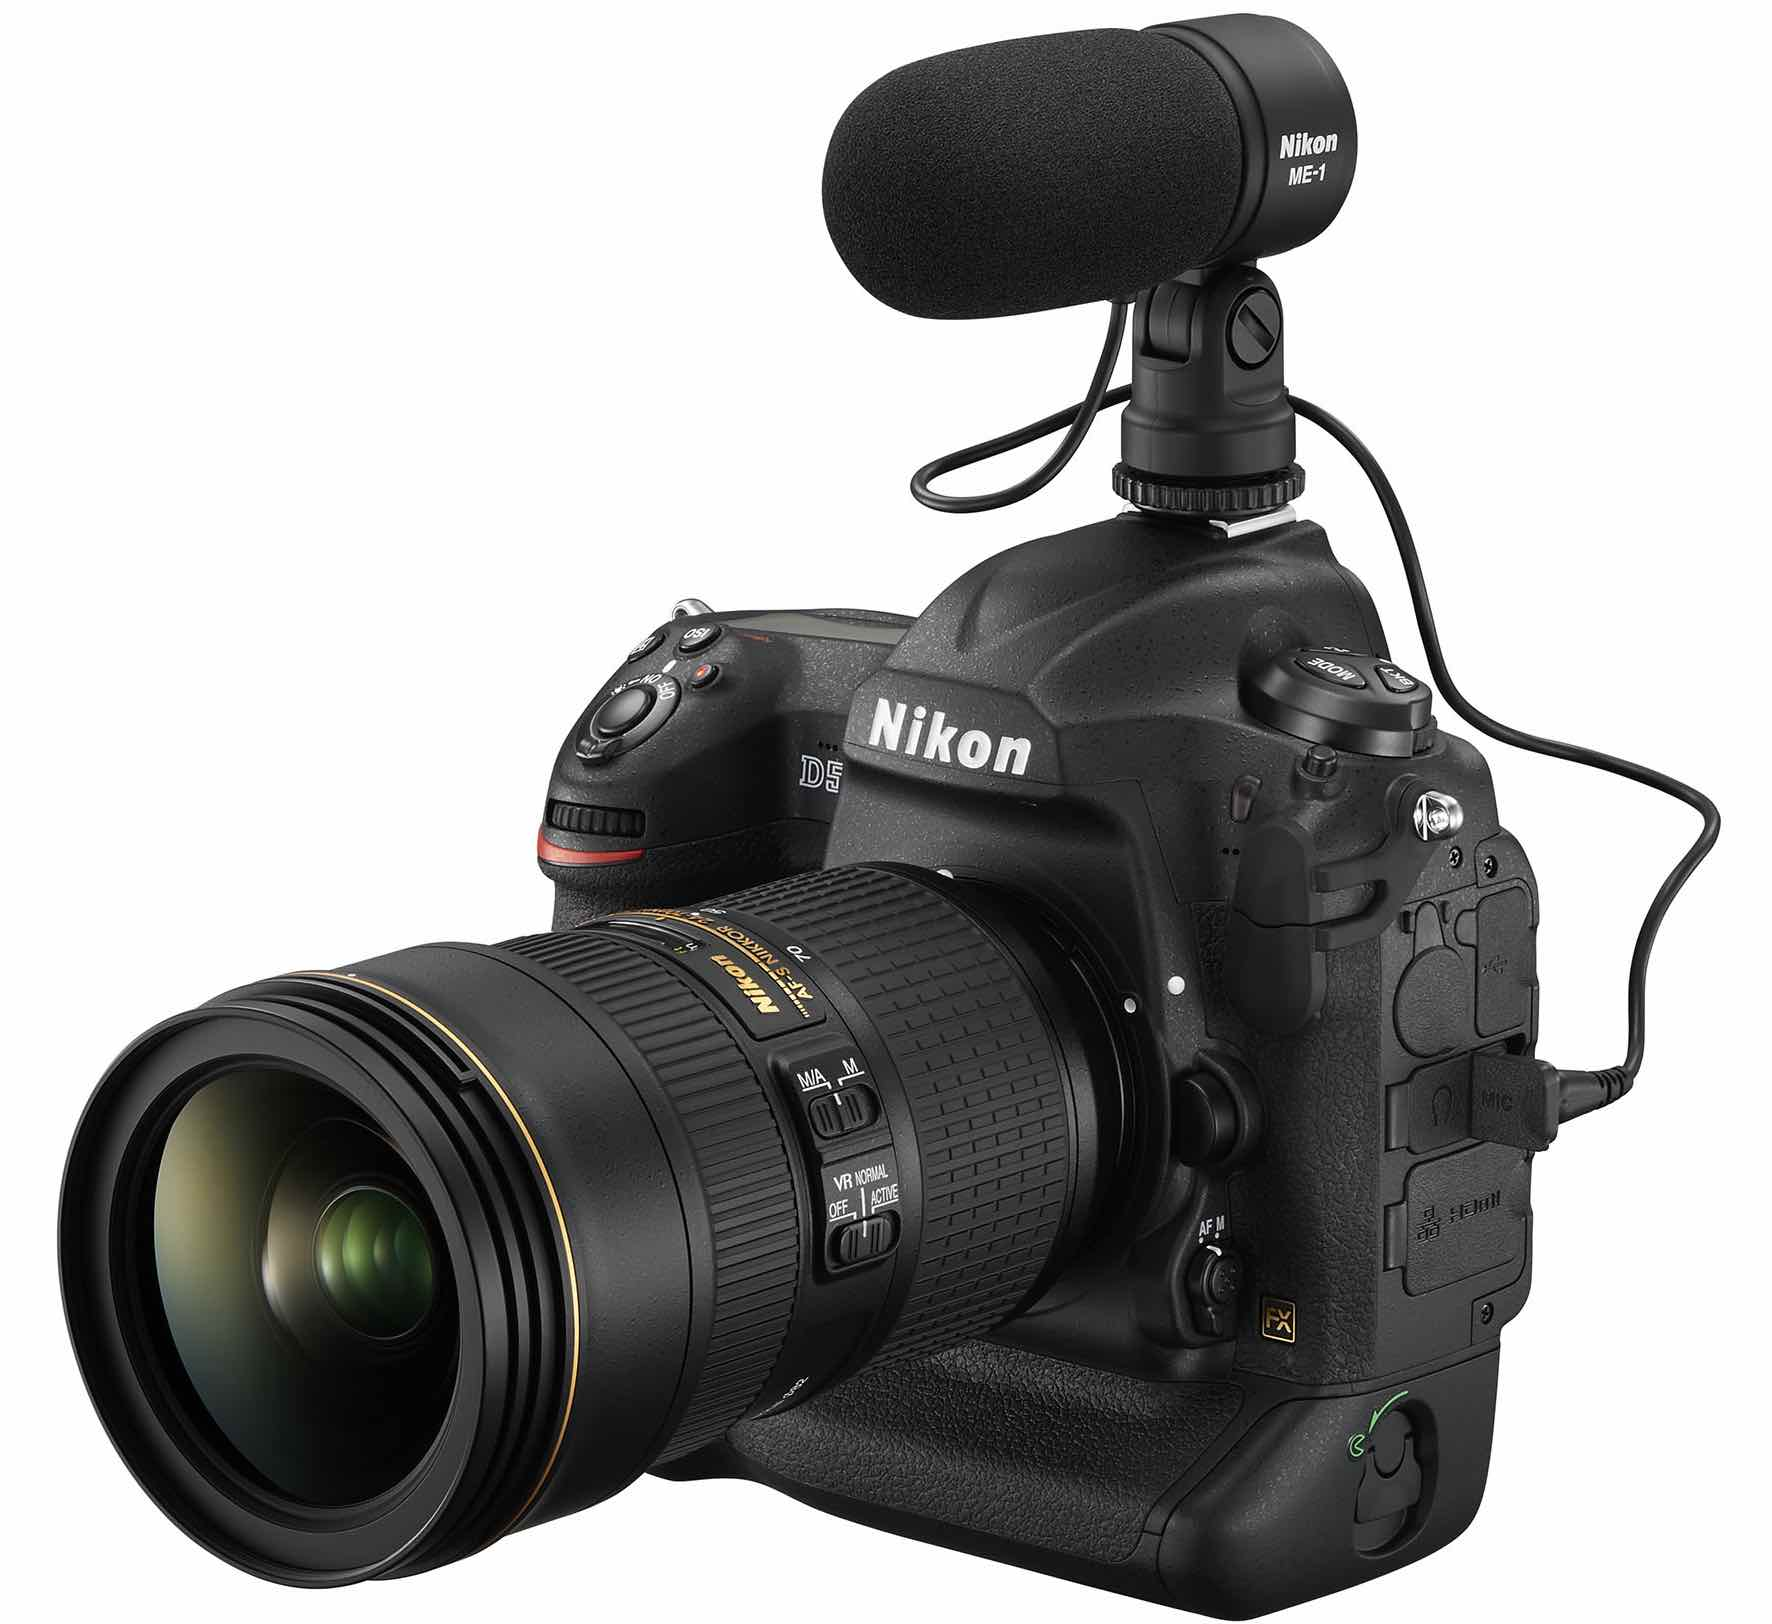 Nikon D5 for video